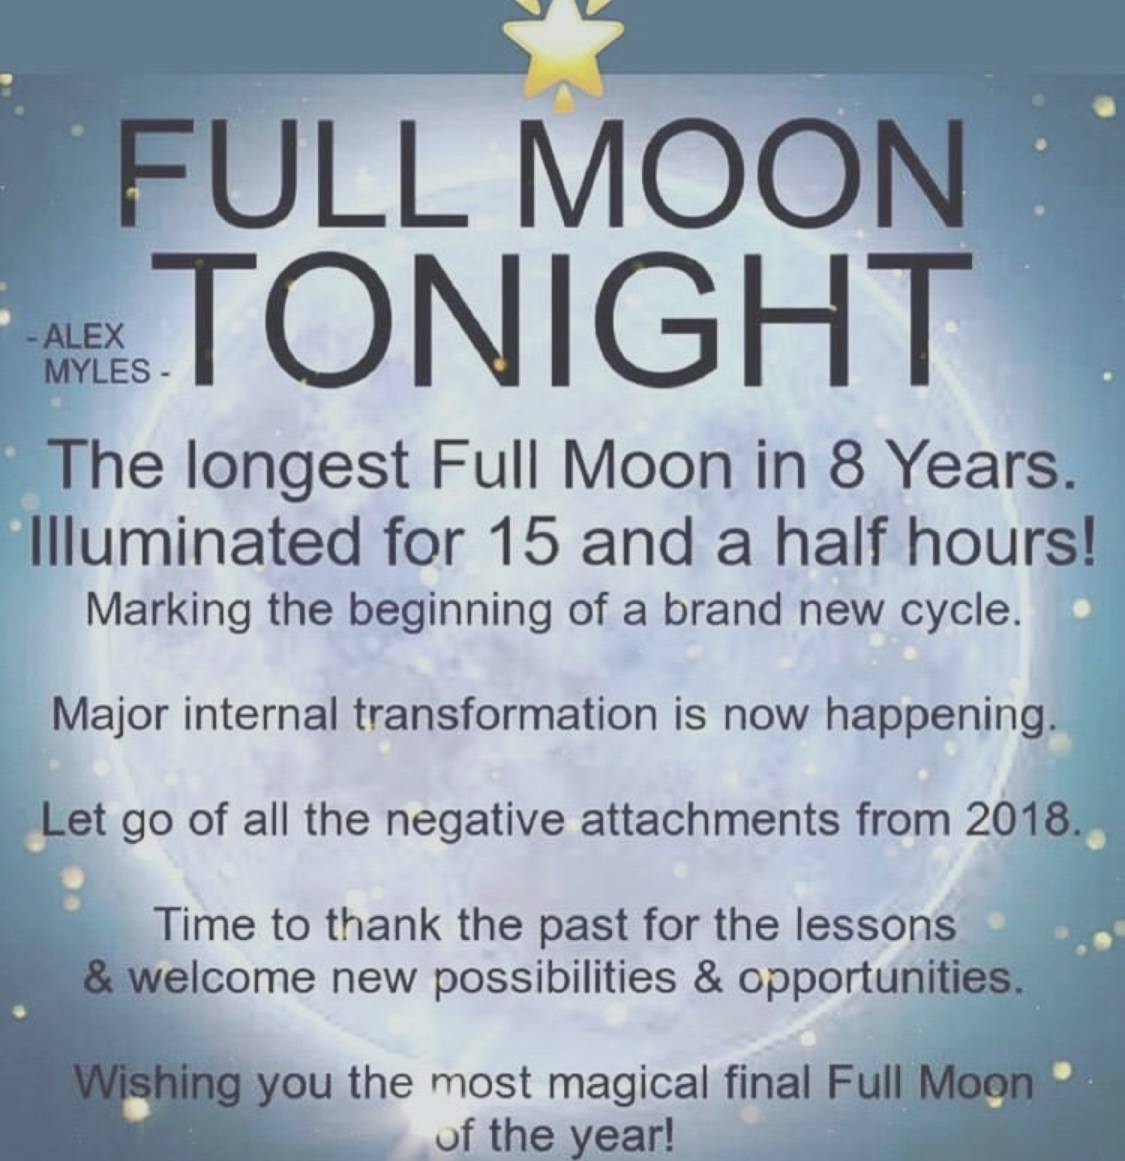 Full Moon was on December 22 at 10:48 am